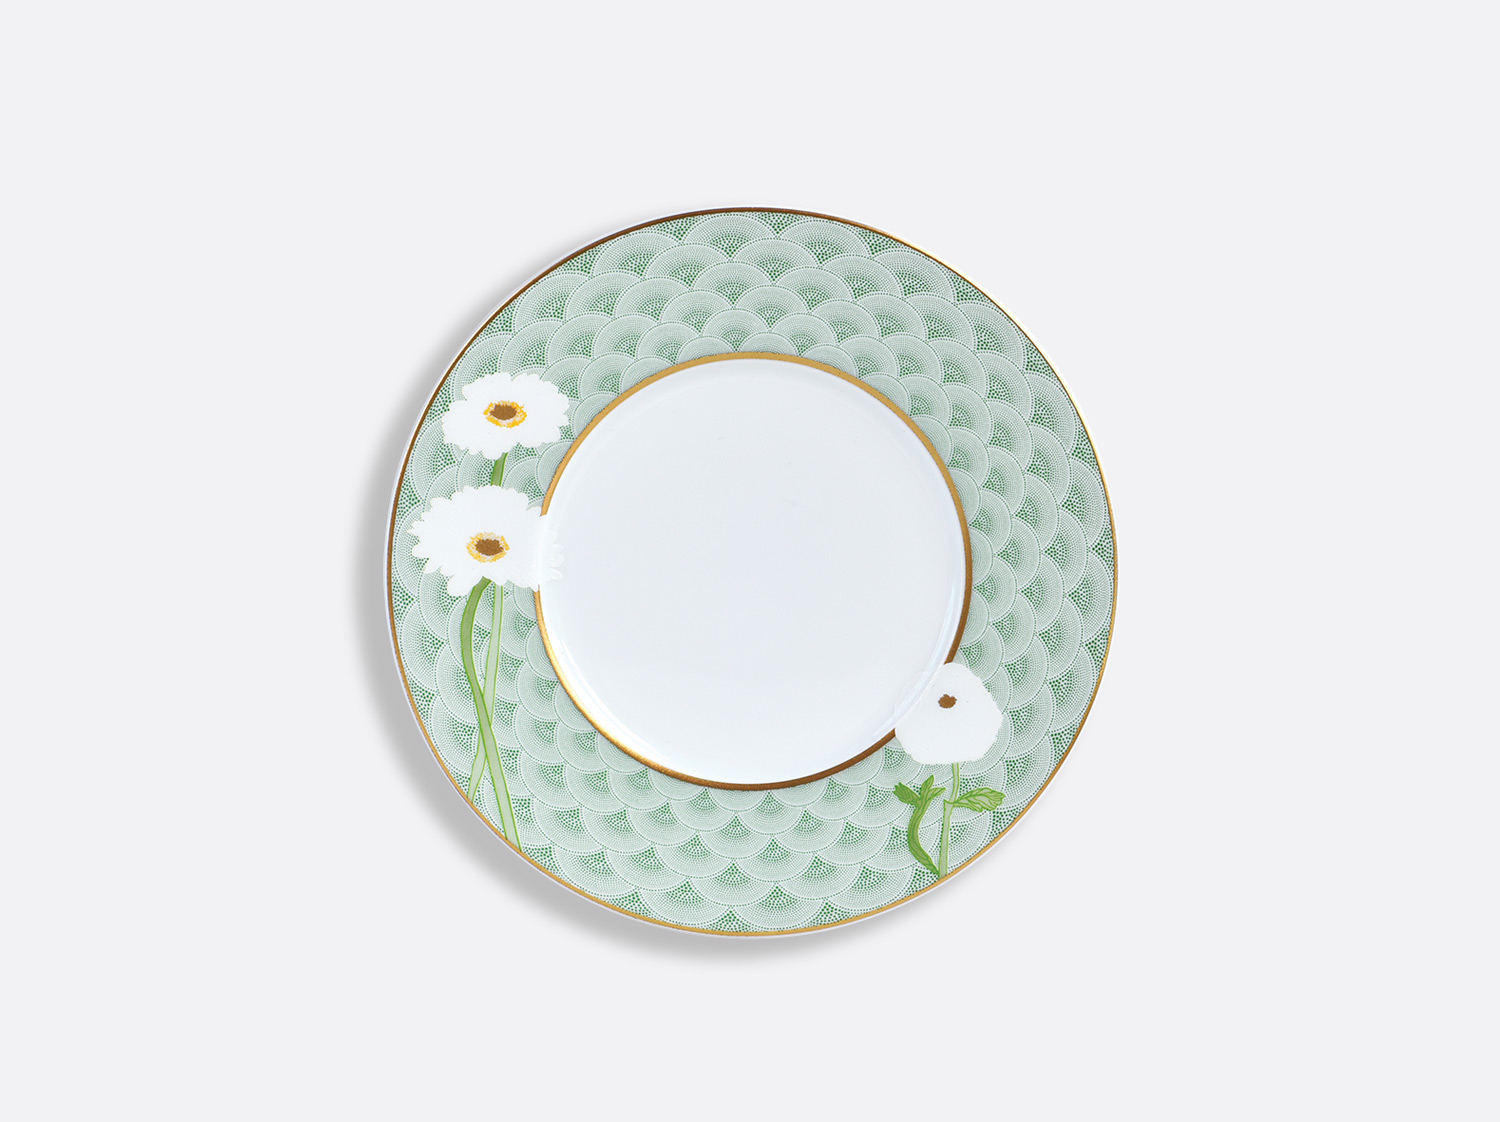 Assiette à pain 16 cm en porcelaine de la collection PRAIANA Bernardaud